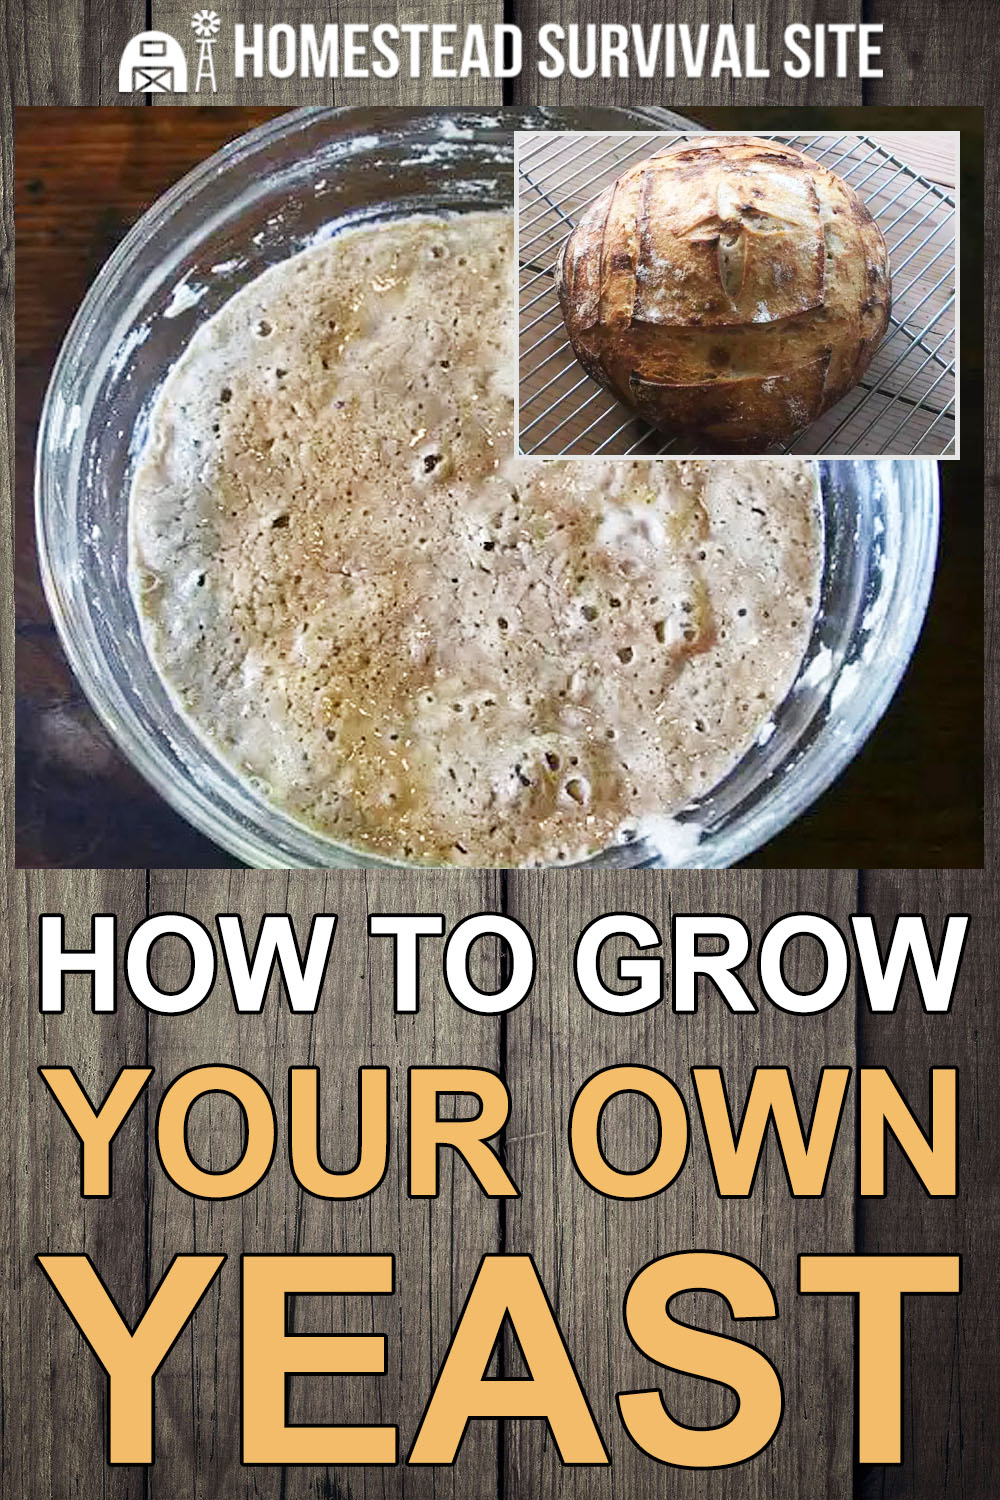 How to Grow Your Own Yeast